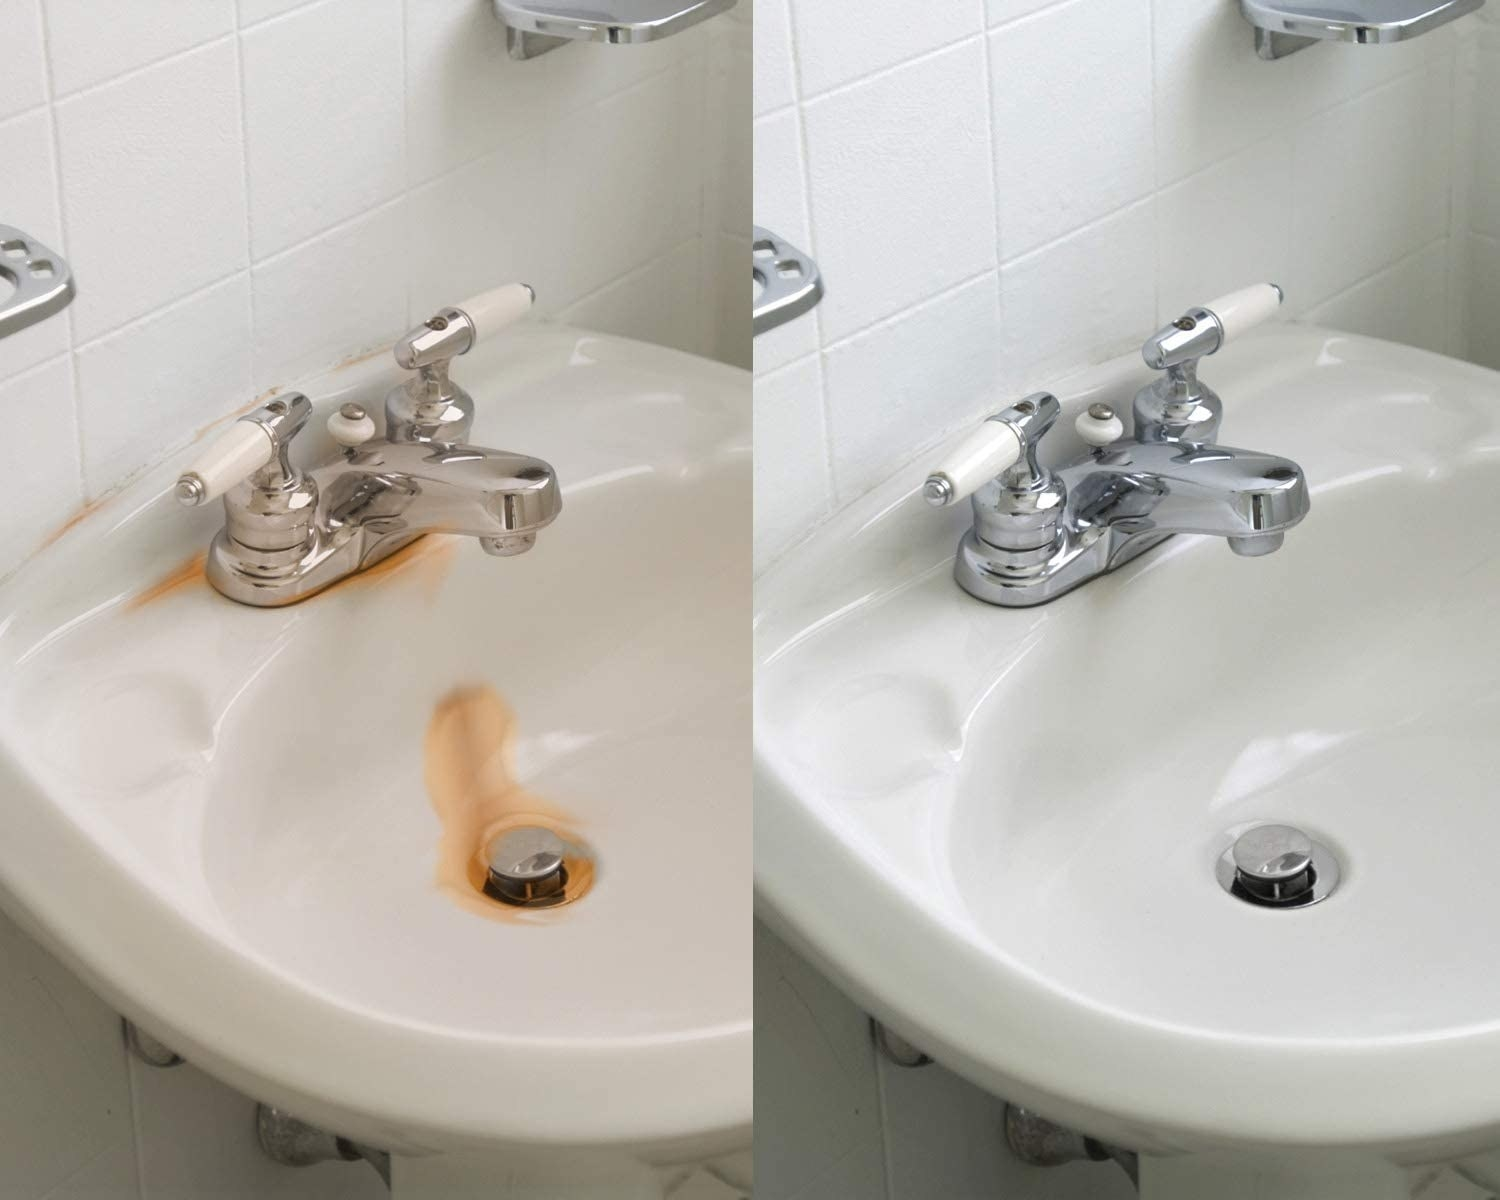 Before-and-after showing sink with rust on the left side and clean sink on the right